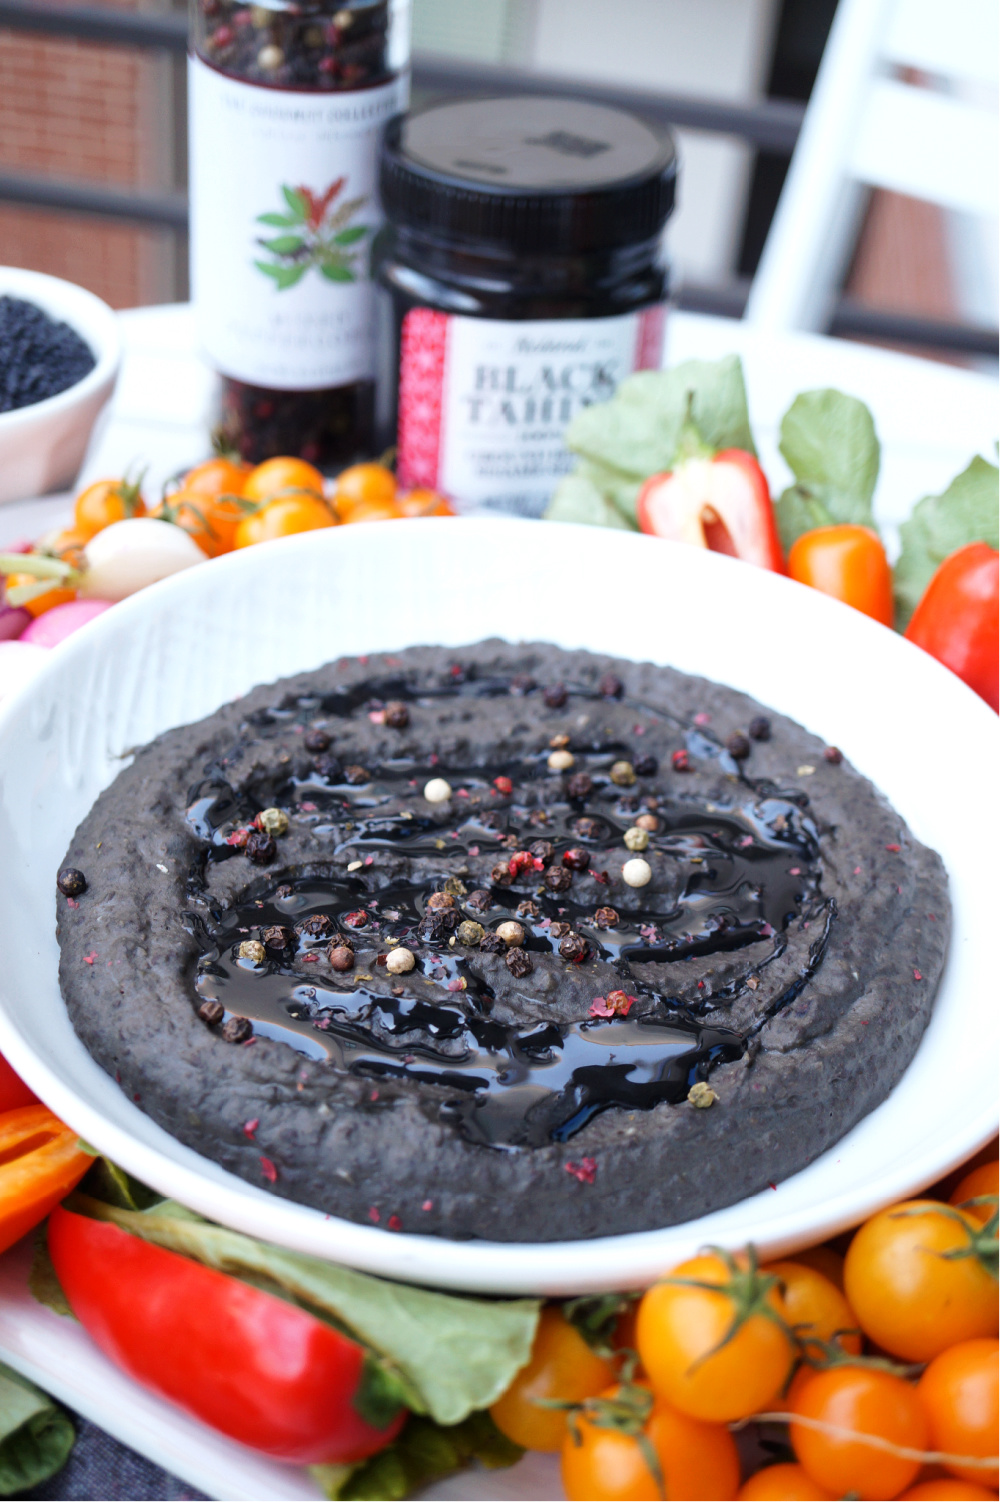 bowl of black lentil hummus with tahini drizzle and peppercorns